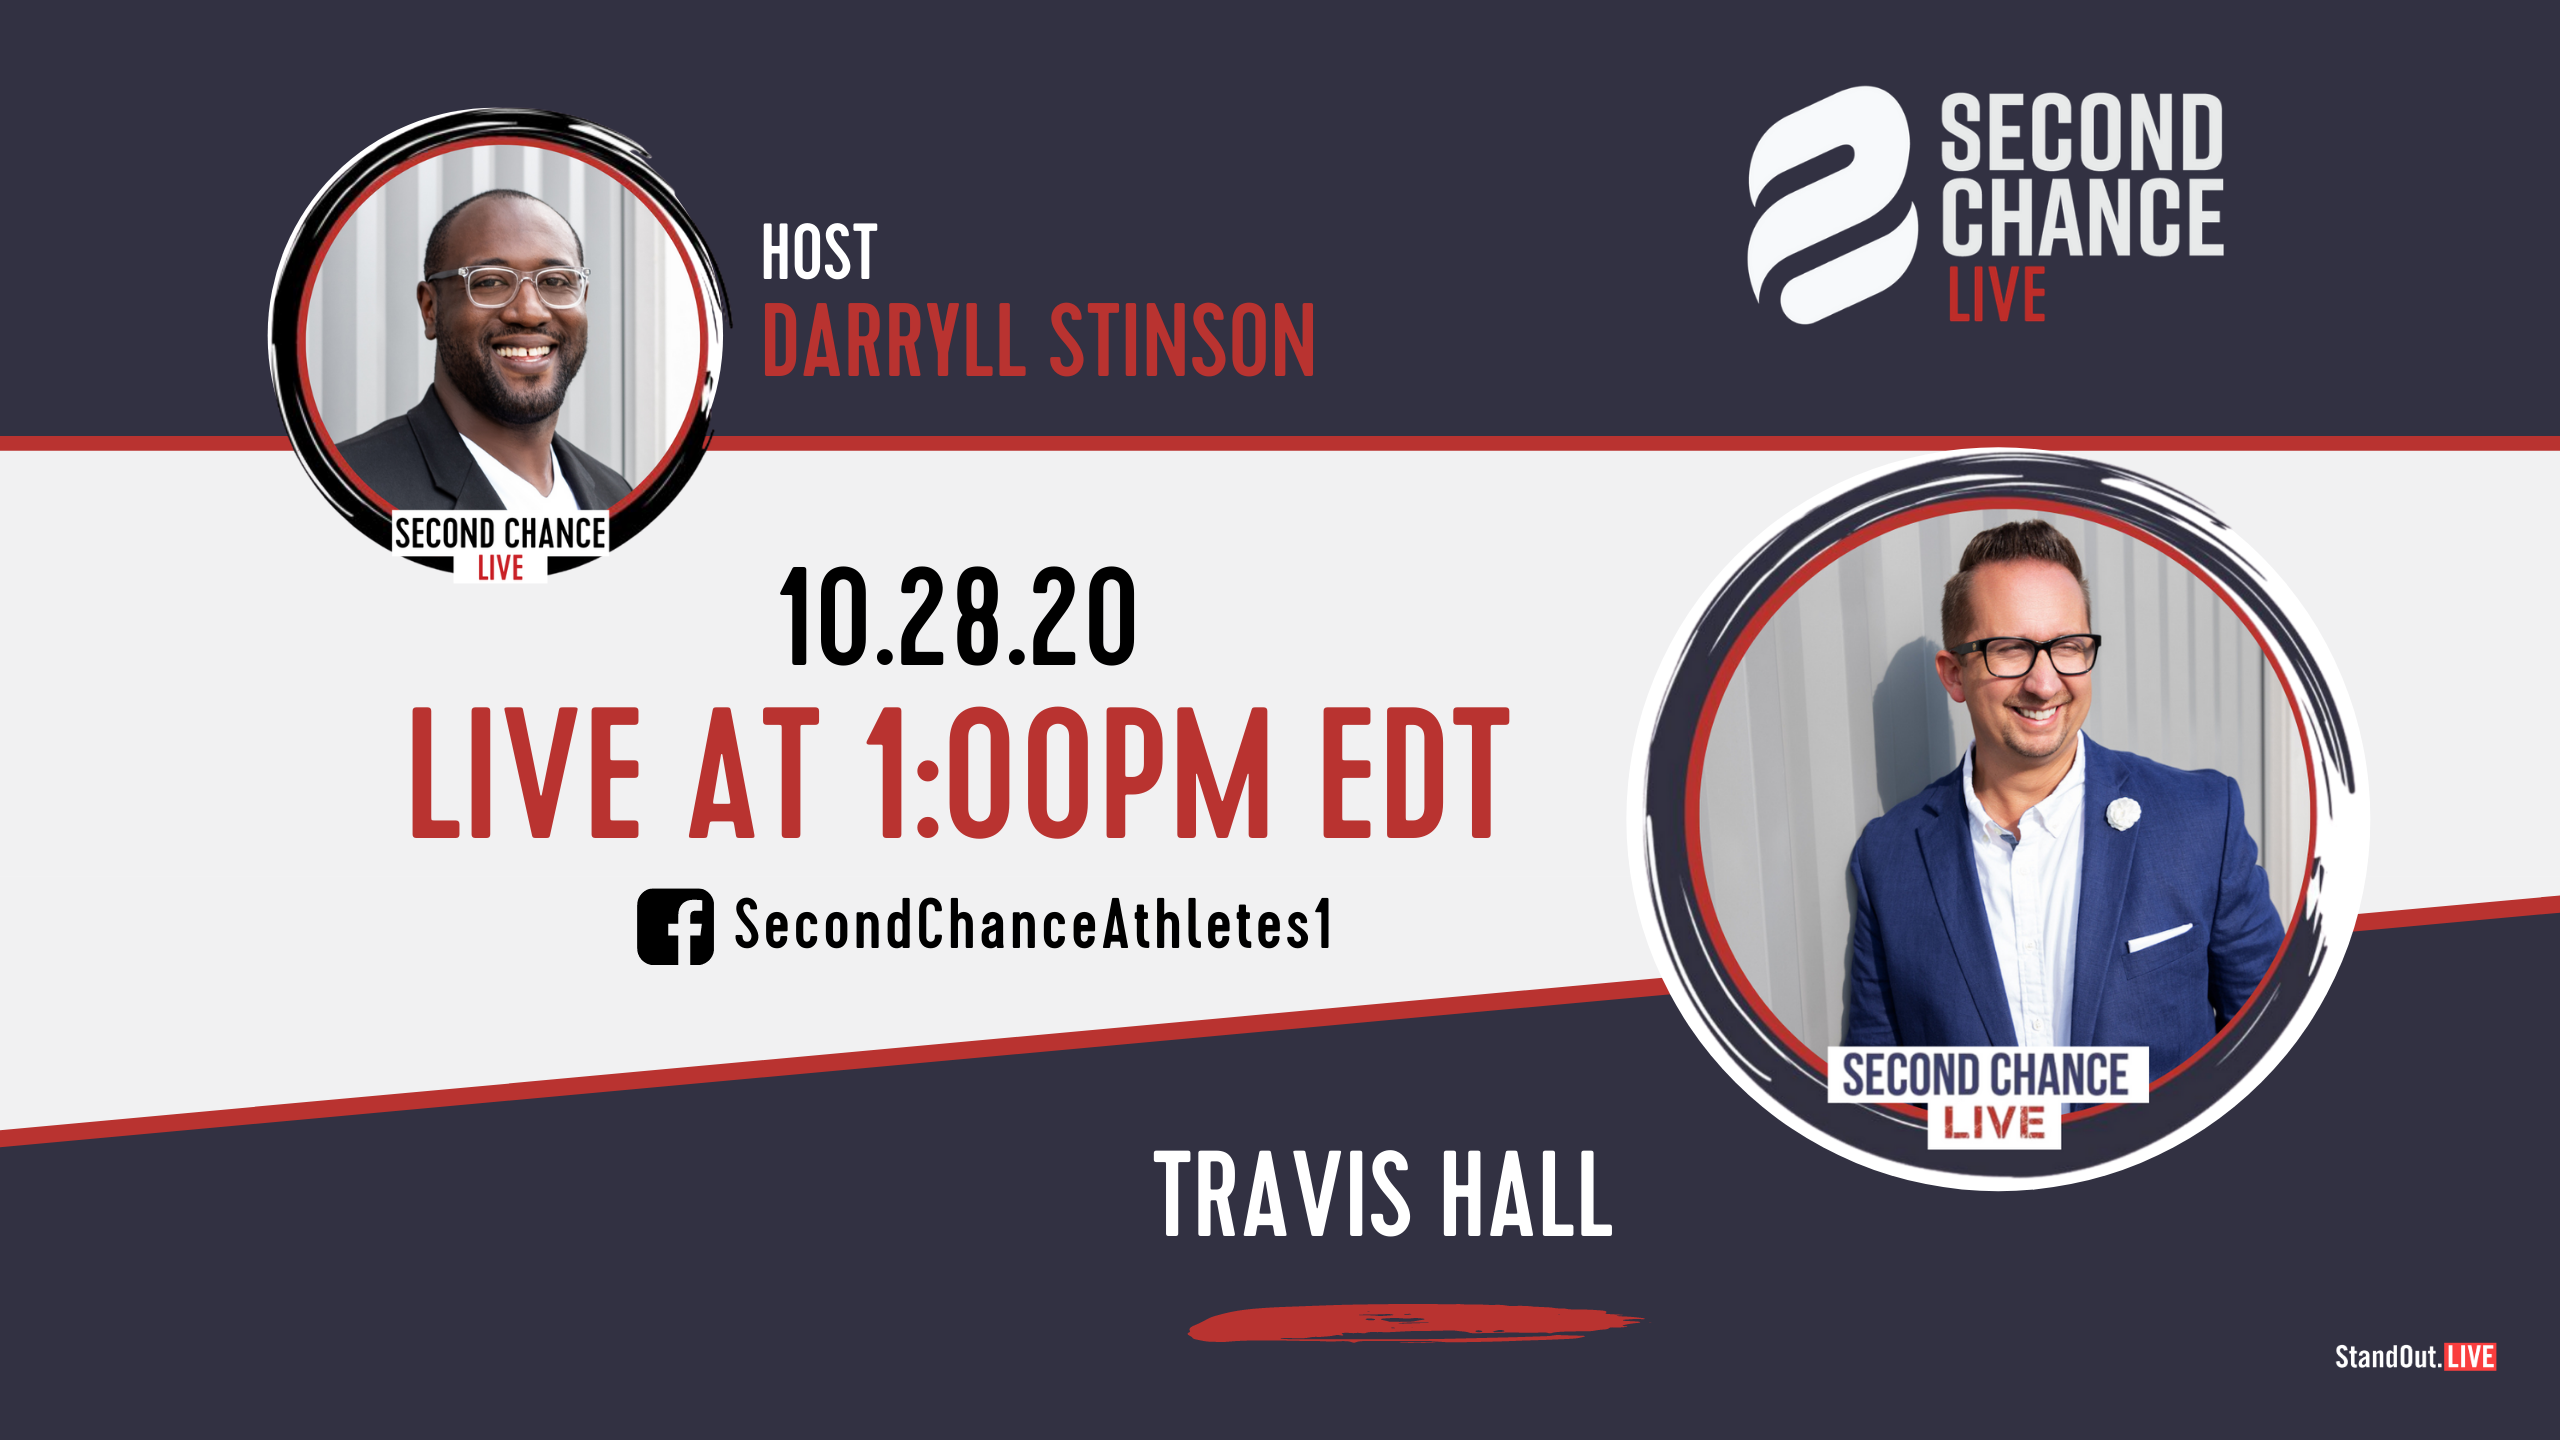 Second Chance LIVE -with Travis Hall